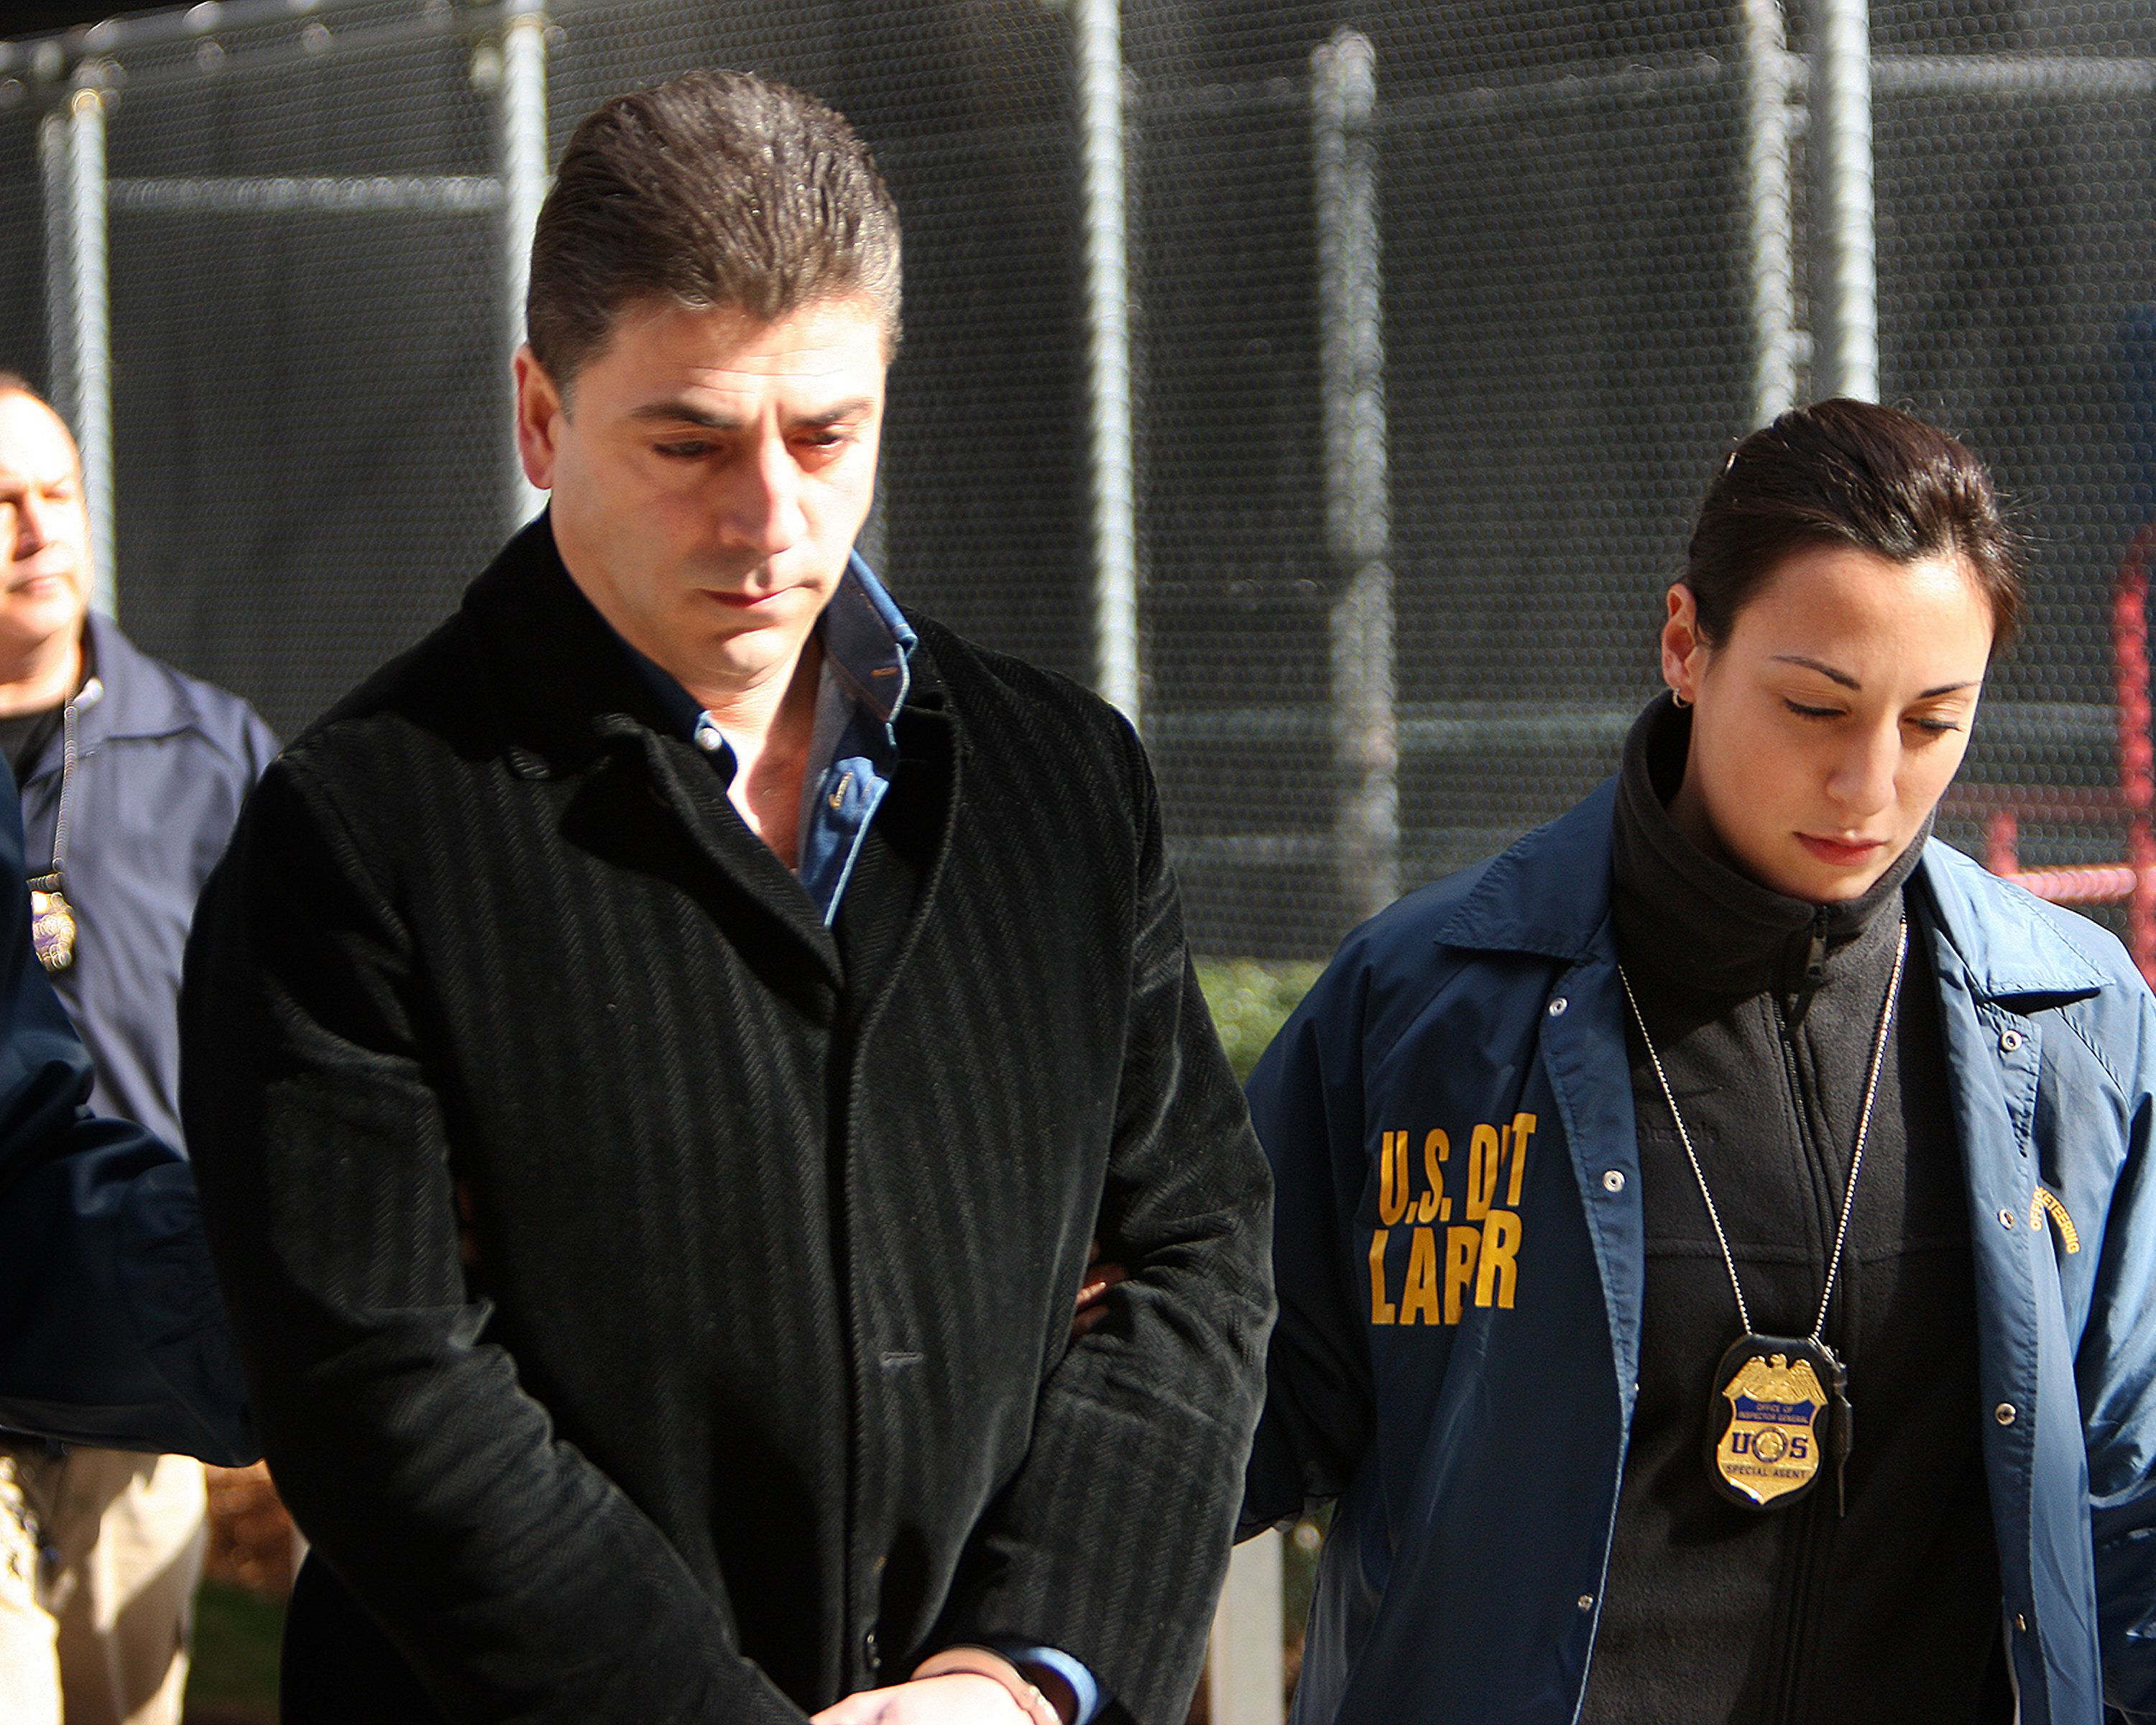 FBI perp walk members of the Gambino crime family. Frank Cali & 61 other Costa Nostra associates were arrested and charged with federal racketeering charges as part of Operation Old Bridge. Prosecutors claimed that Cali acted as the Gambino ambassador to the Sicilian mobsters and as a liaison between D'Amico and teh Sicilian connections to the Inzerillo family. Cali was charged with racketeering, extortion, and conspiracy along with D'Amica and DiMaria.(Photo By: Egan-Chin, Debbie/NY Daily News via Getty Images)